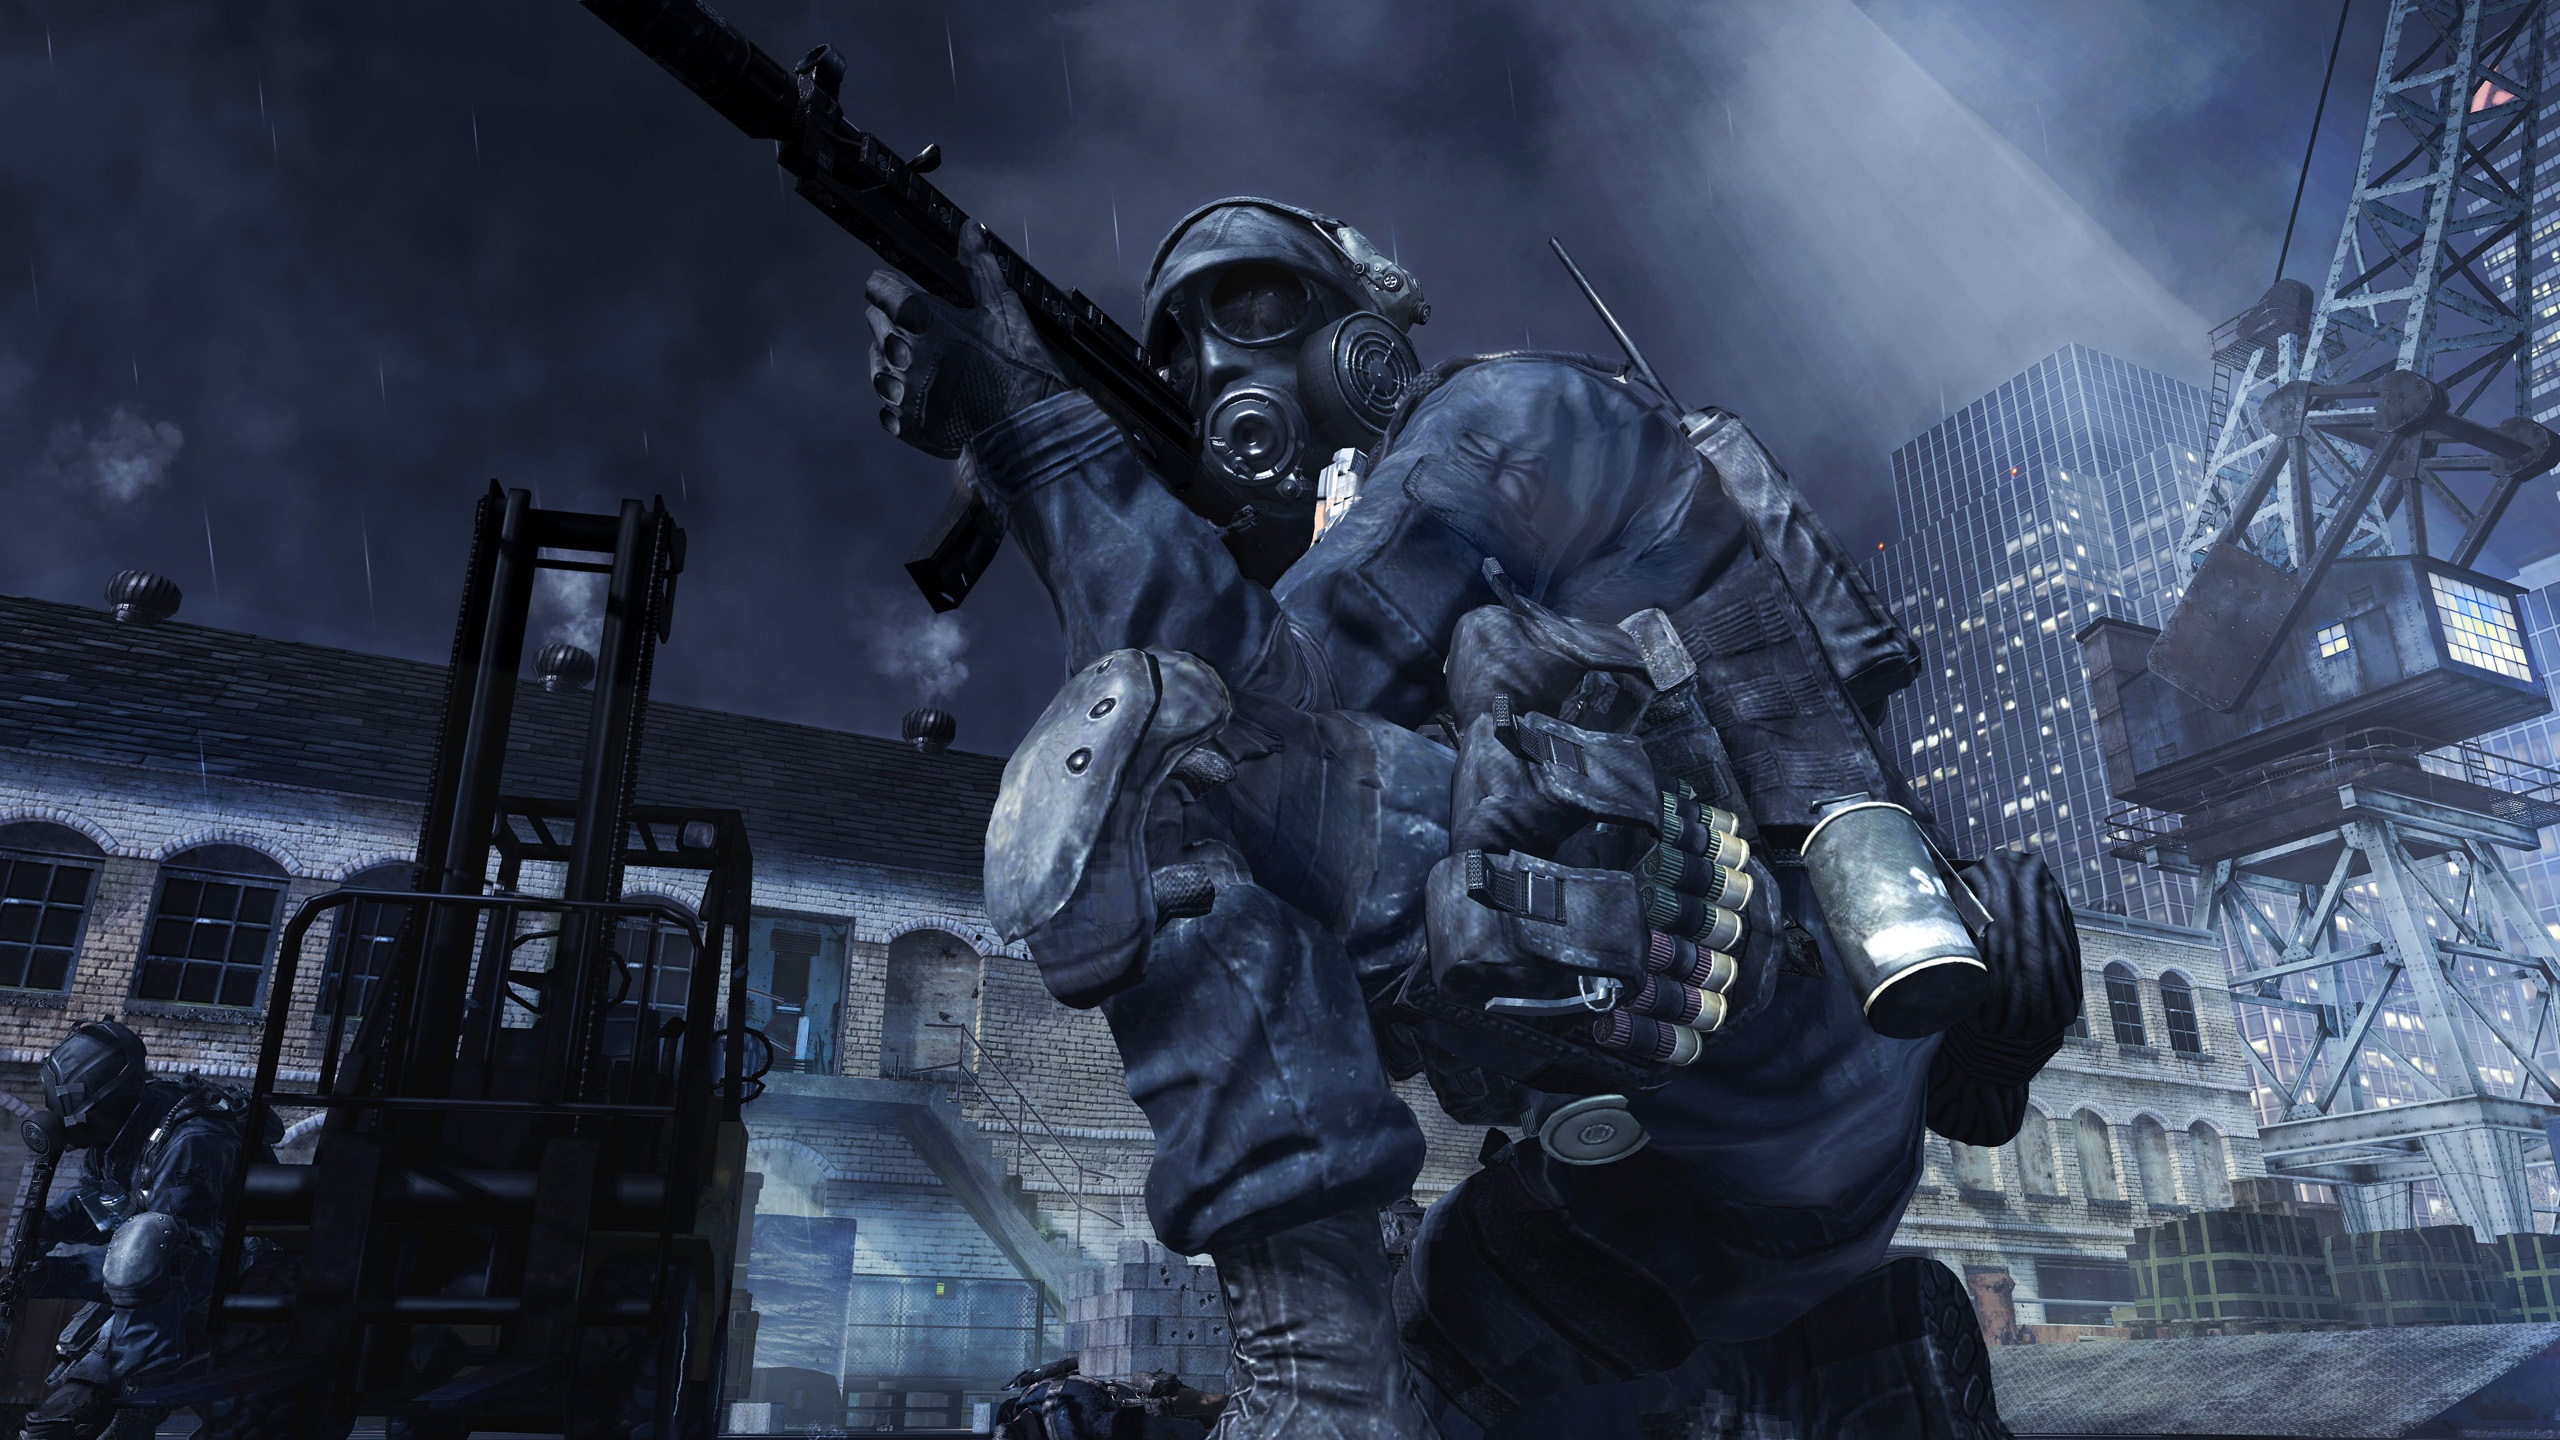 Wallpaper Call Of Duty Modern Warfare 3 Hd 2560x1600 Hd Picture